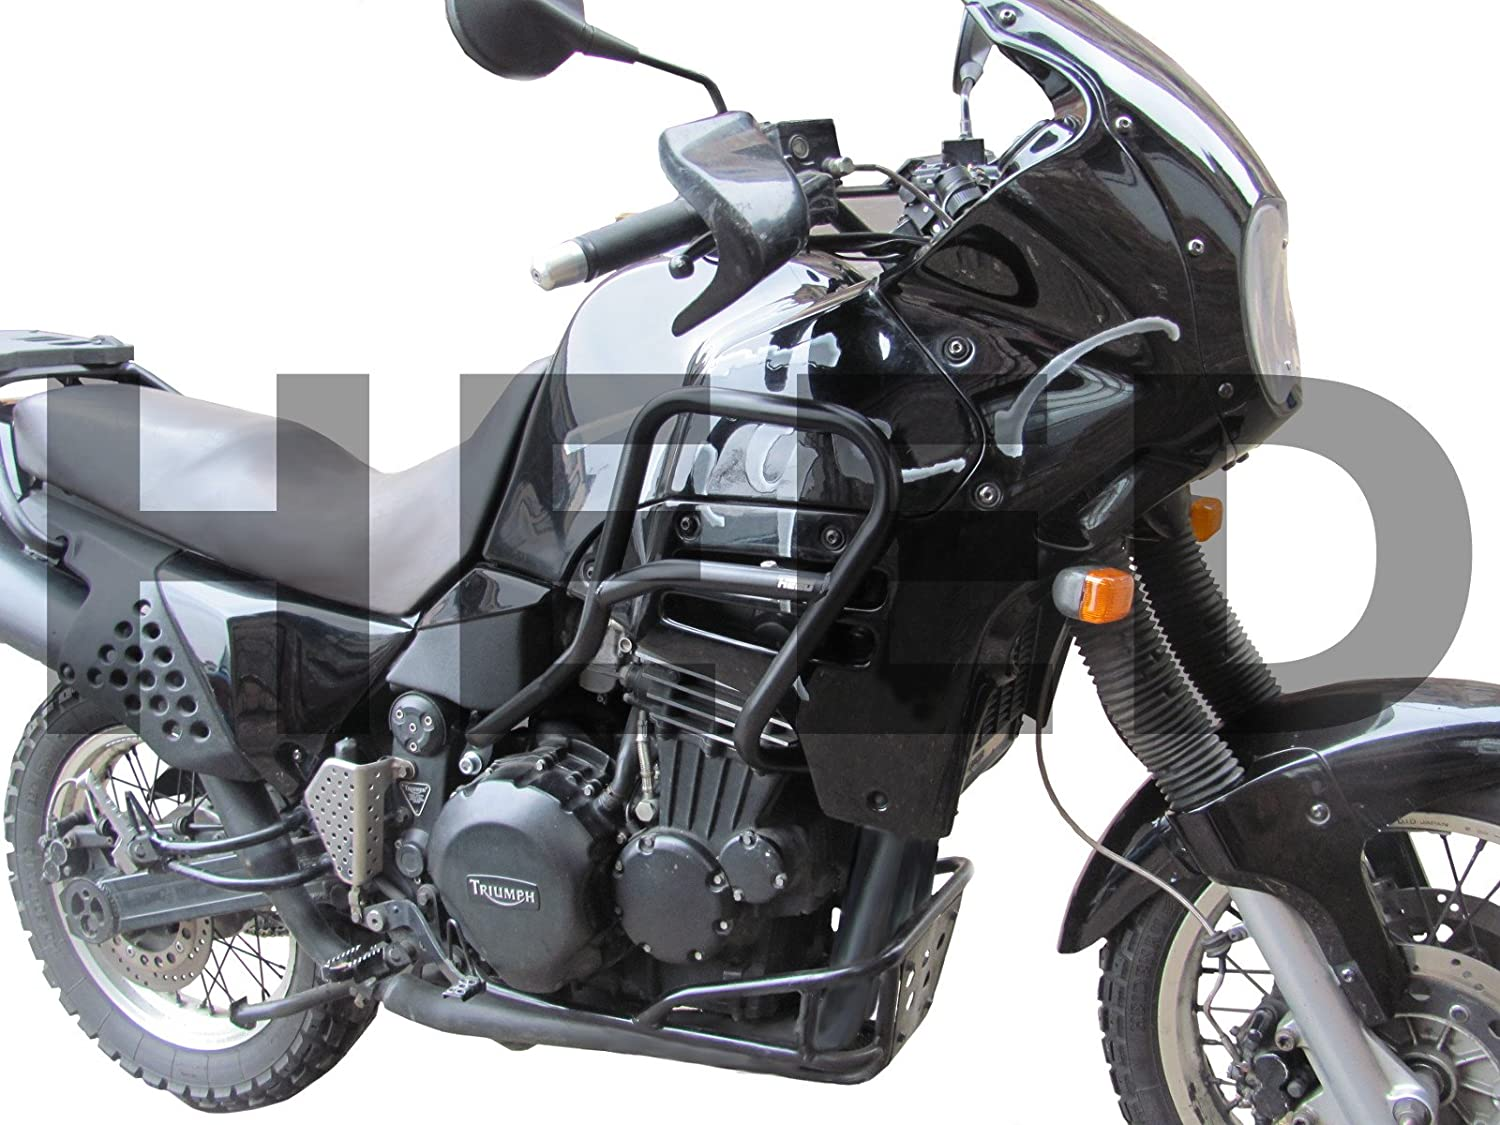 93-98 Pare carters HEED Triumph Tiger 900